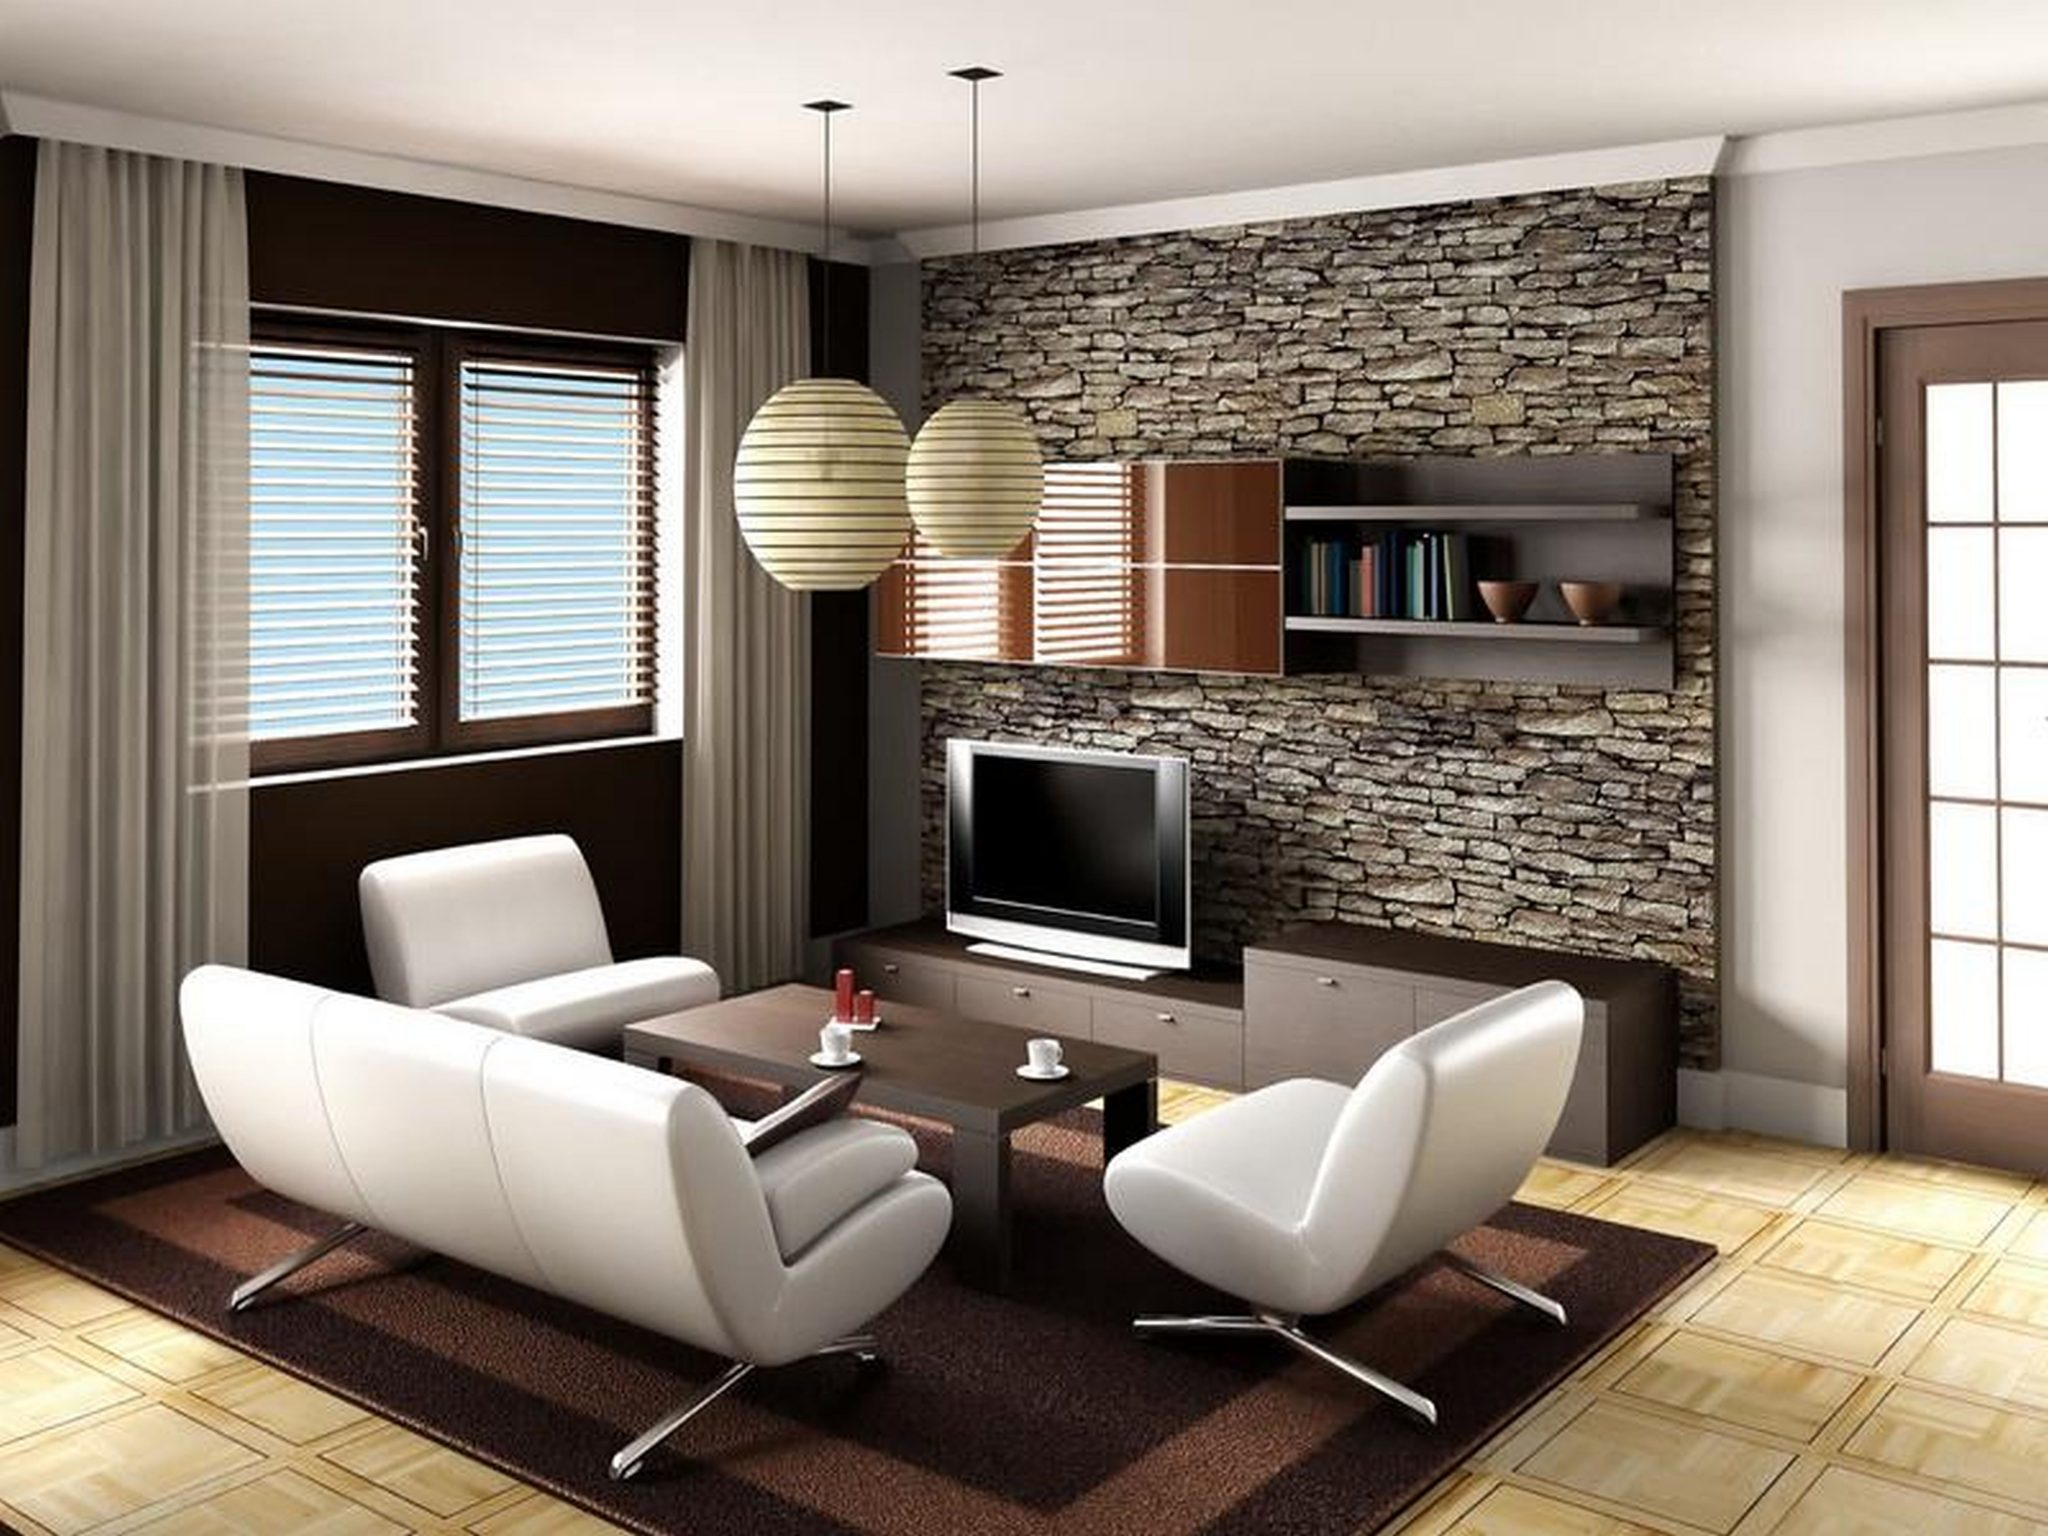 5 ideas para decorar salas de estar modernas hoy lowcost for Interiores de salas modernas